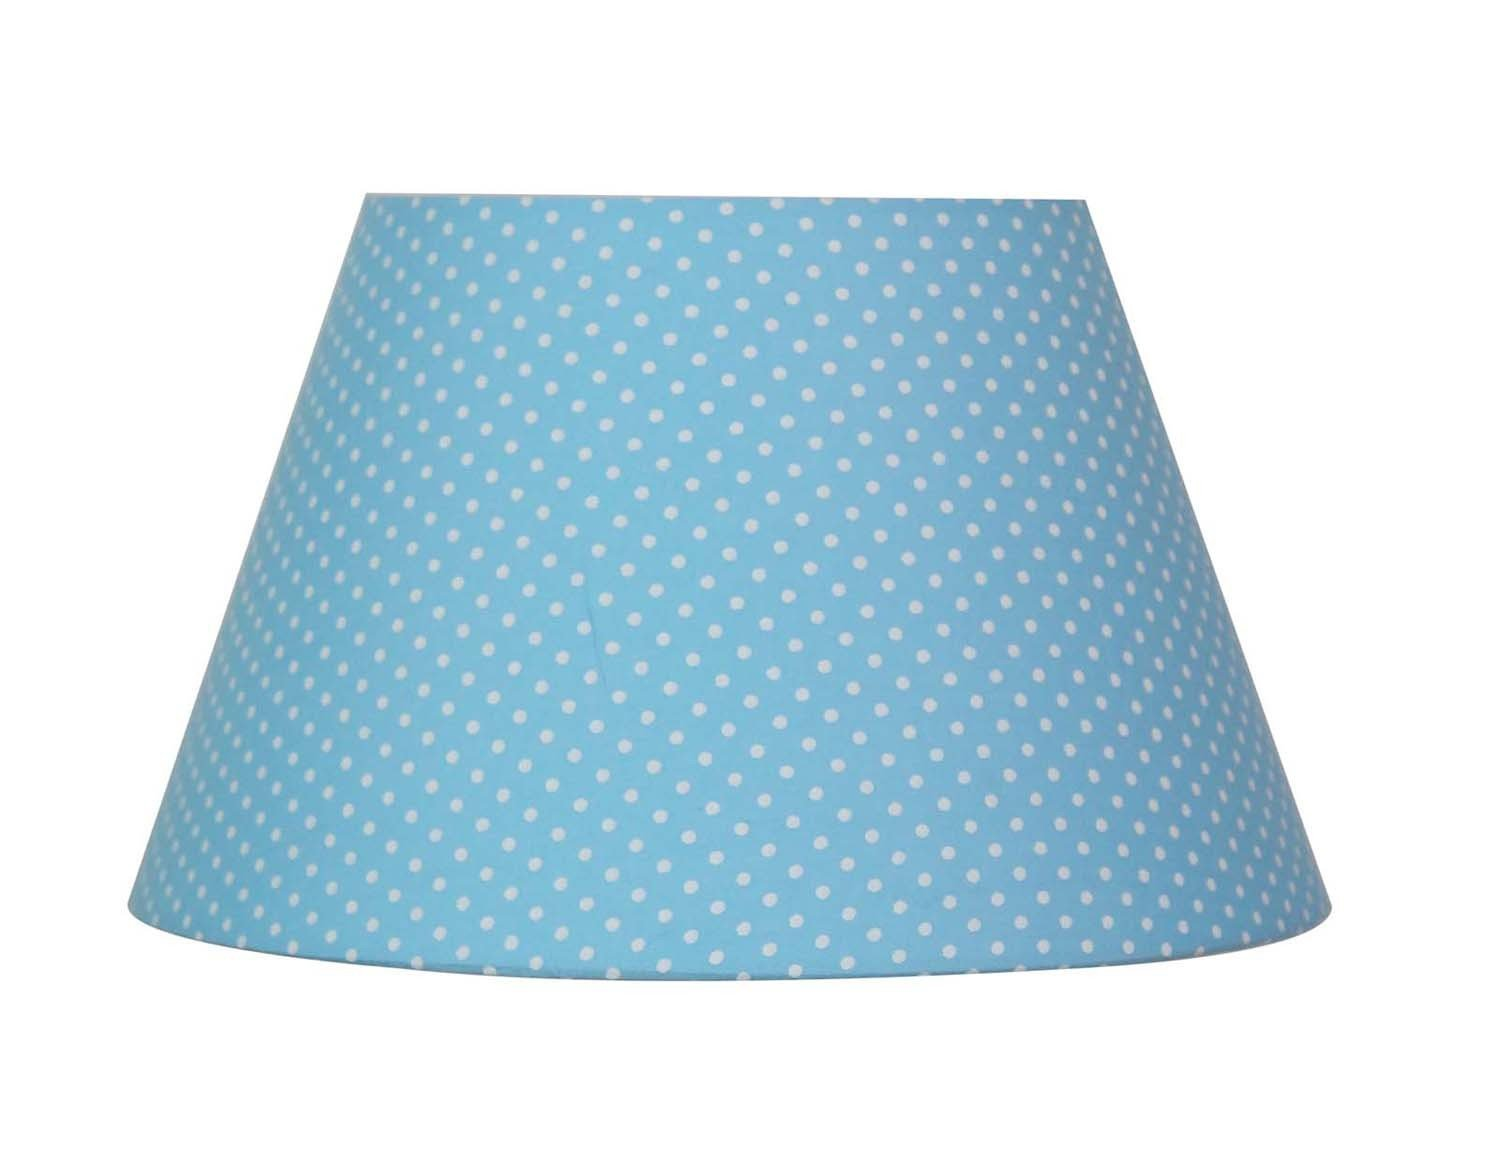 Абажур Lamplandia 7797-2 blue with white dots